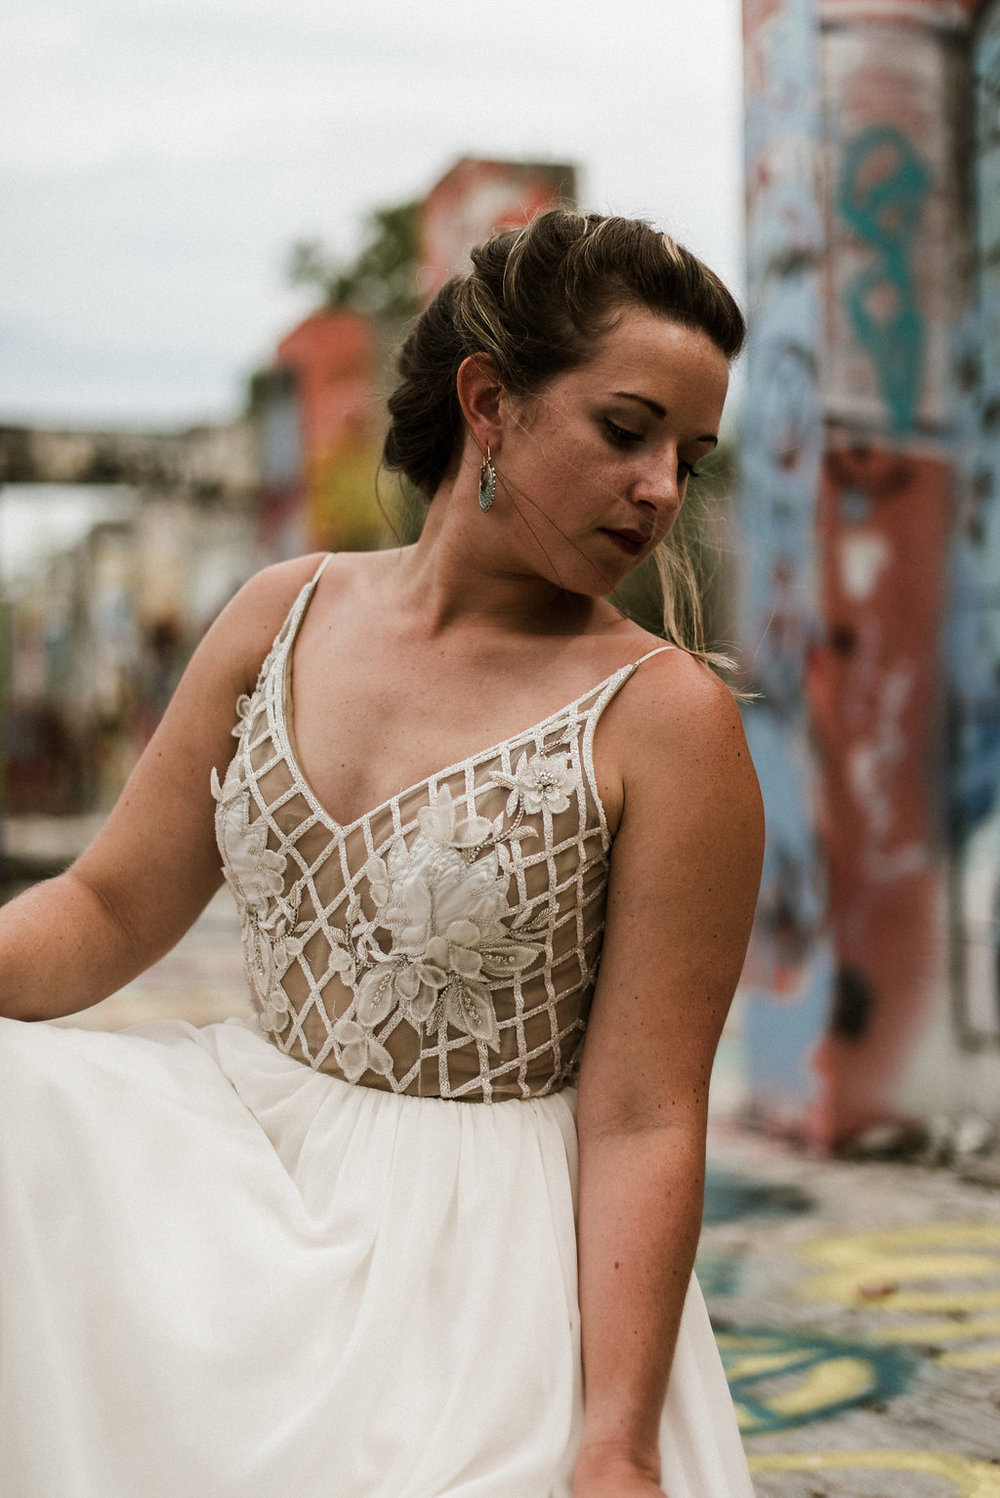 Savannah-Stonehenge-lauren-imus-photography-savannah-wedding-photographer-blush-by-hayley-paige-honeycomb-ivory-and-beau-bridal-boutique-savannah-wedding-dresses-savannah-bridal-boutique-savannah-wedding-planner-savannah-florist-graffiti-wedding-17.jpg